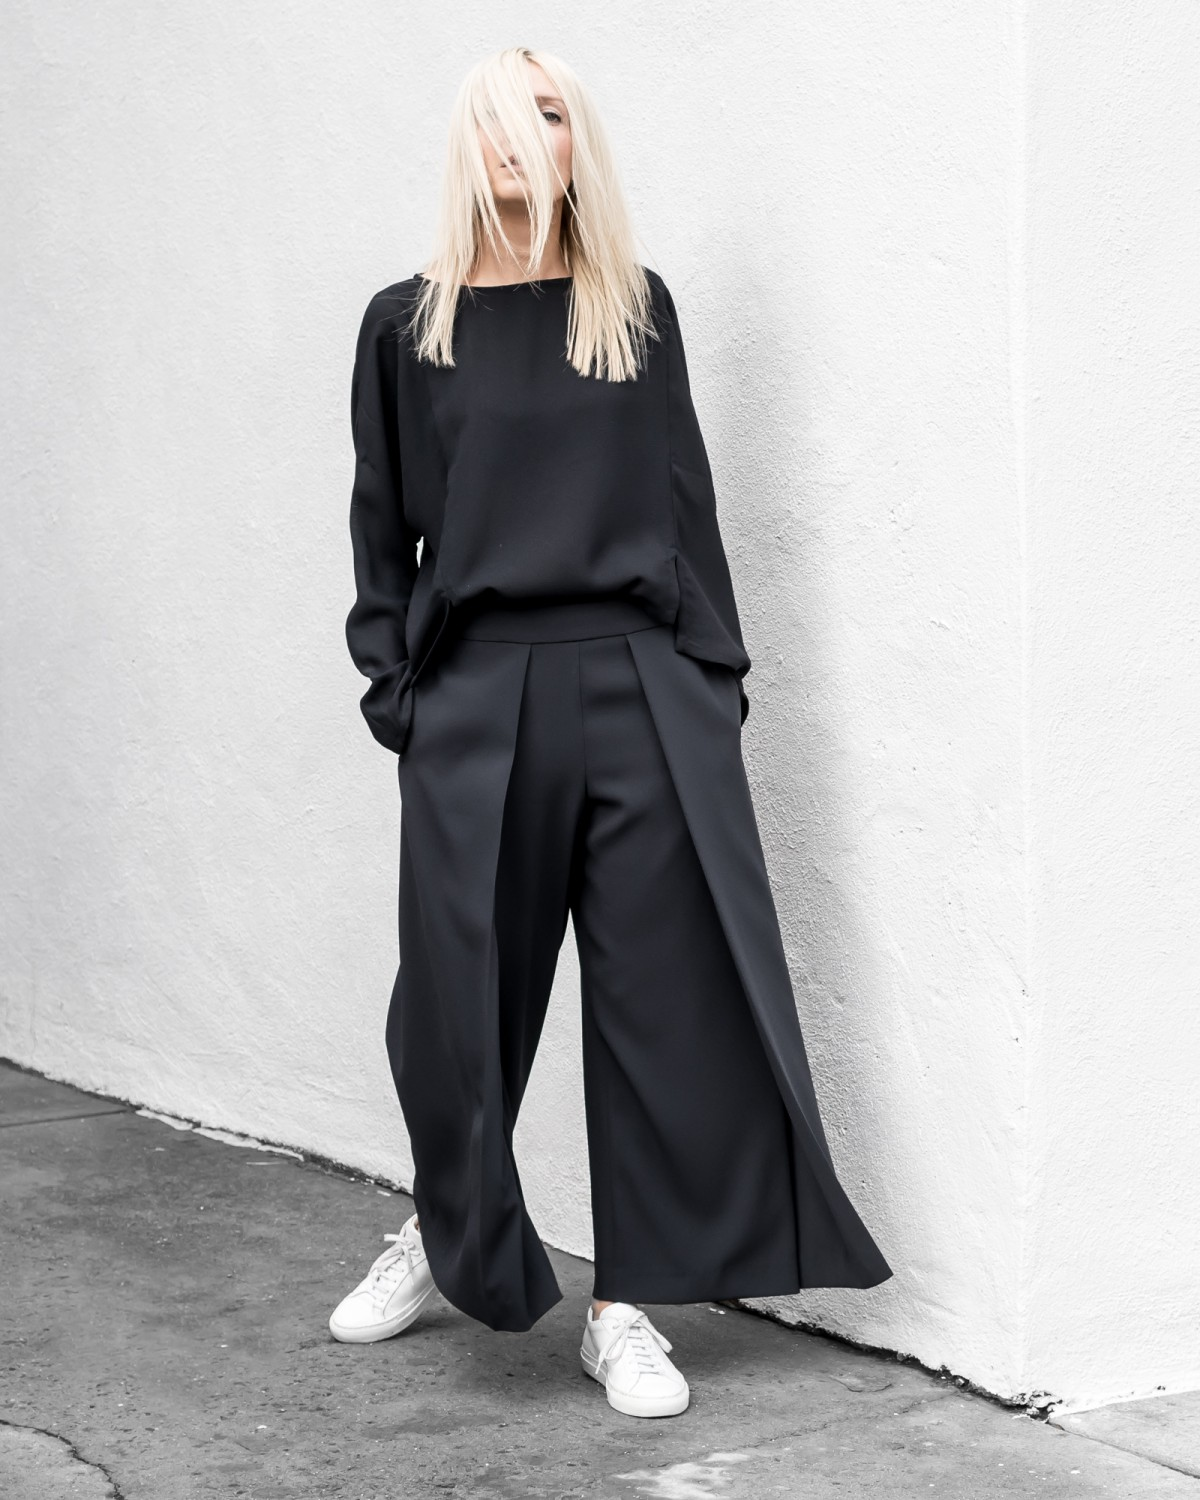 AEL Black Double deck Side Female Broad Leg Pants 2018 Spring Women's Clothing Large Size Fashion Lady Straight Trousers